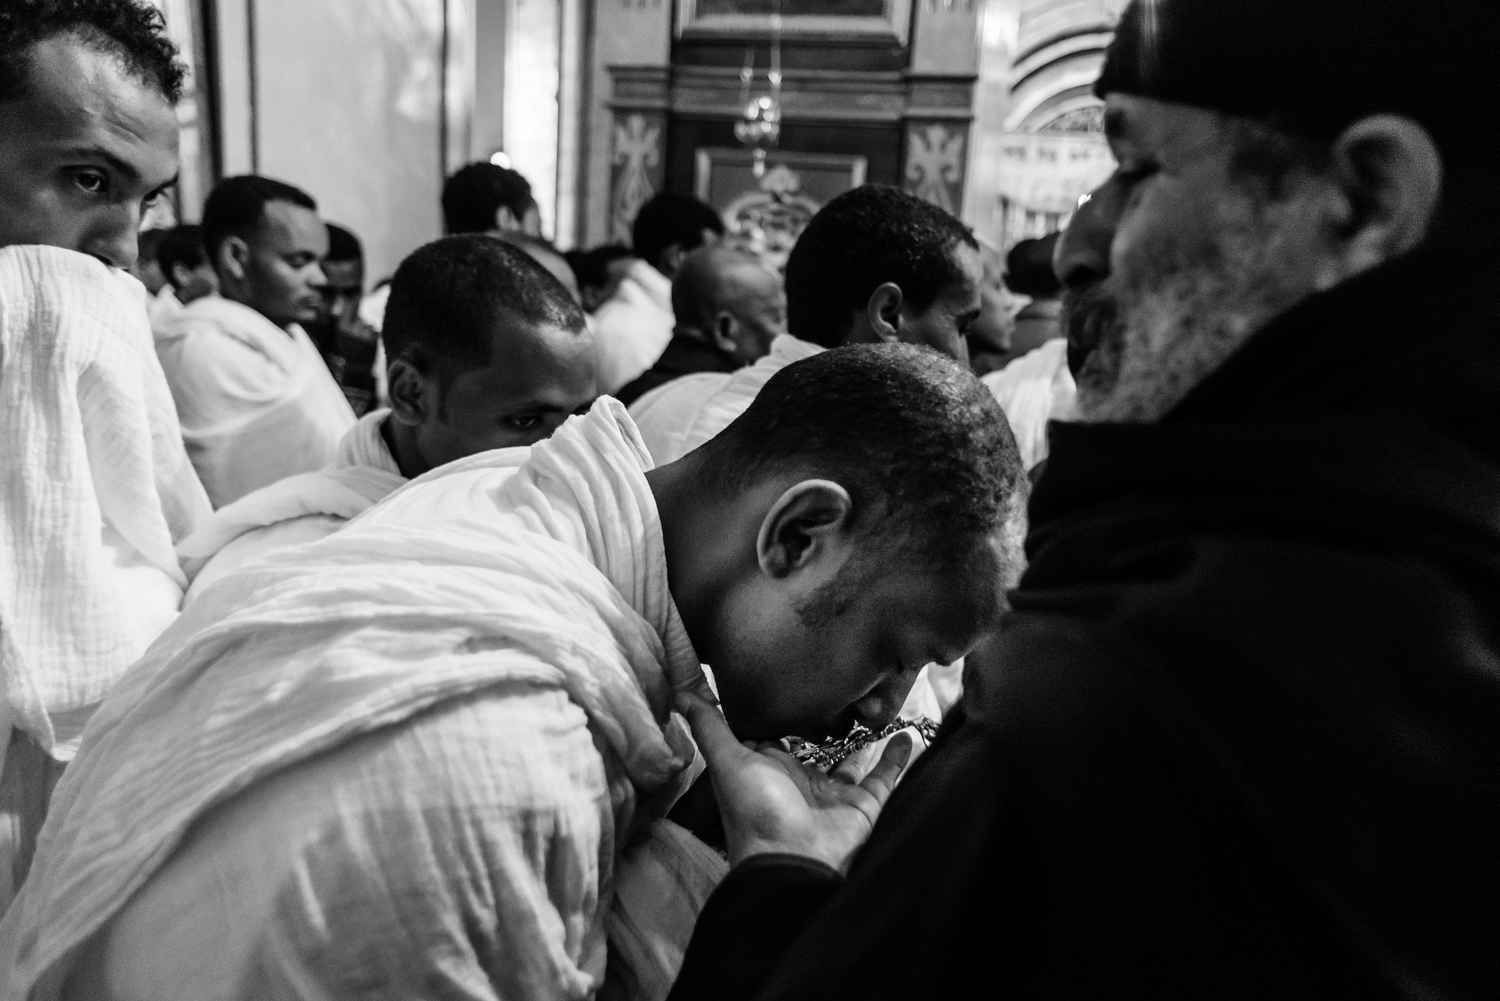 """Ethiopian Worshipers"" by Dor Kedmi"